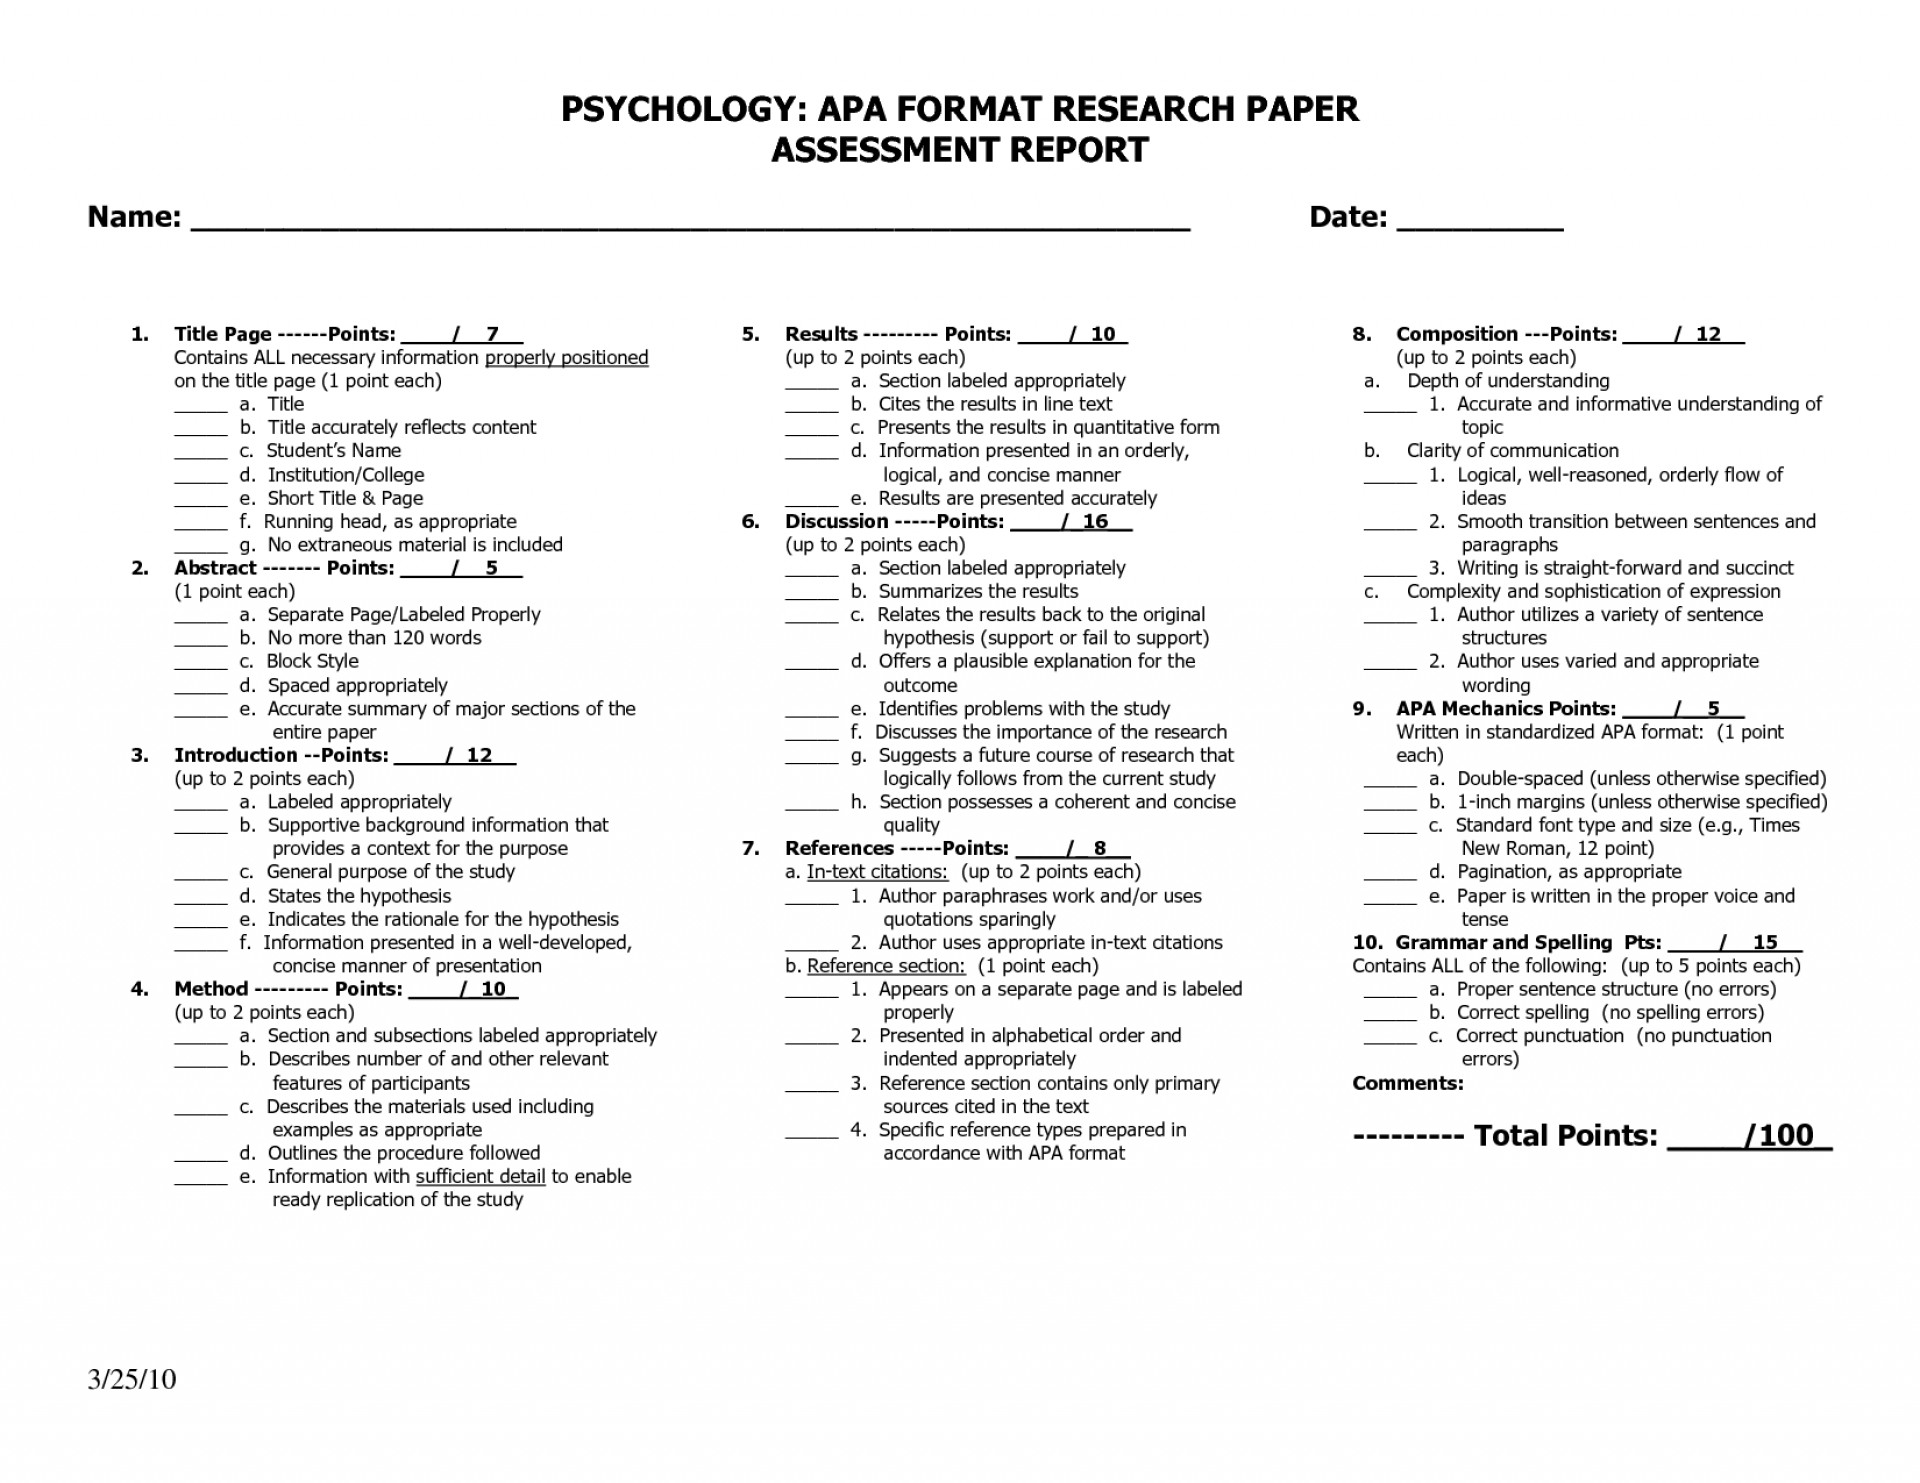 012 Psychology Research Paper Apamat Sensational Outline Apa Abstract 1920